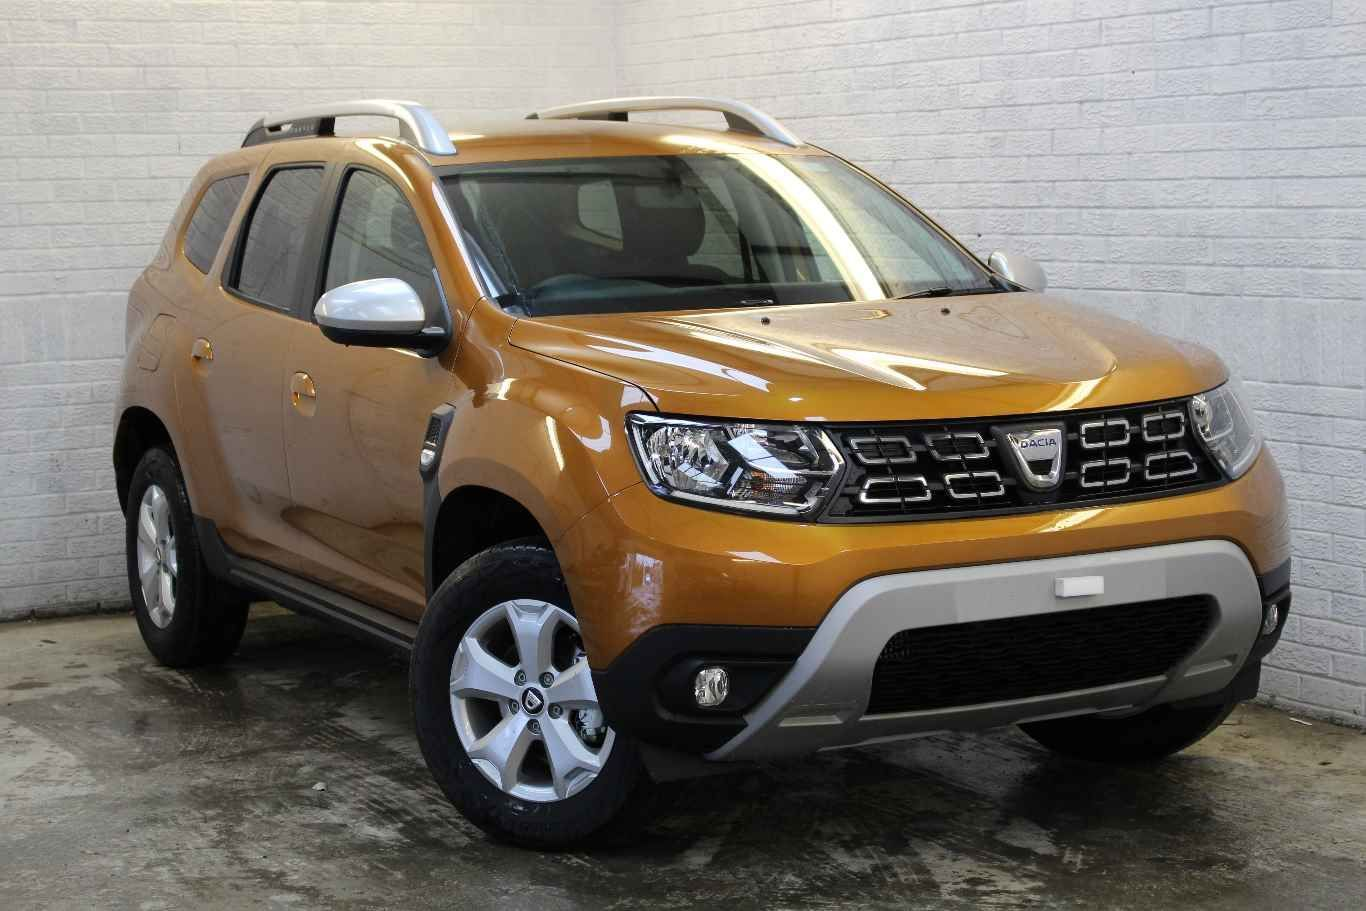 Dacia Duster 5dr 1.3 Tce 130 Comfort 4x2